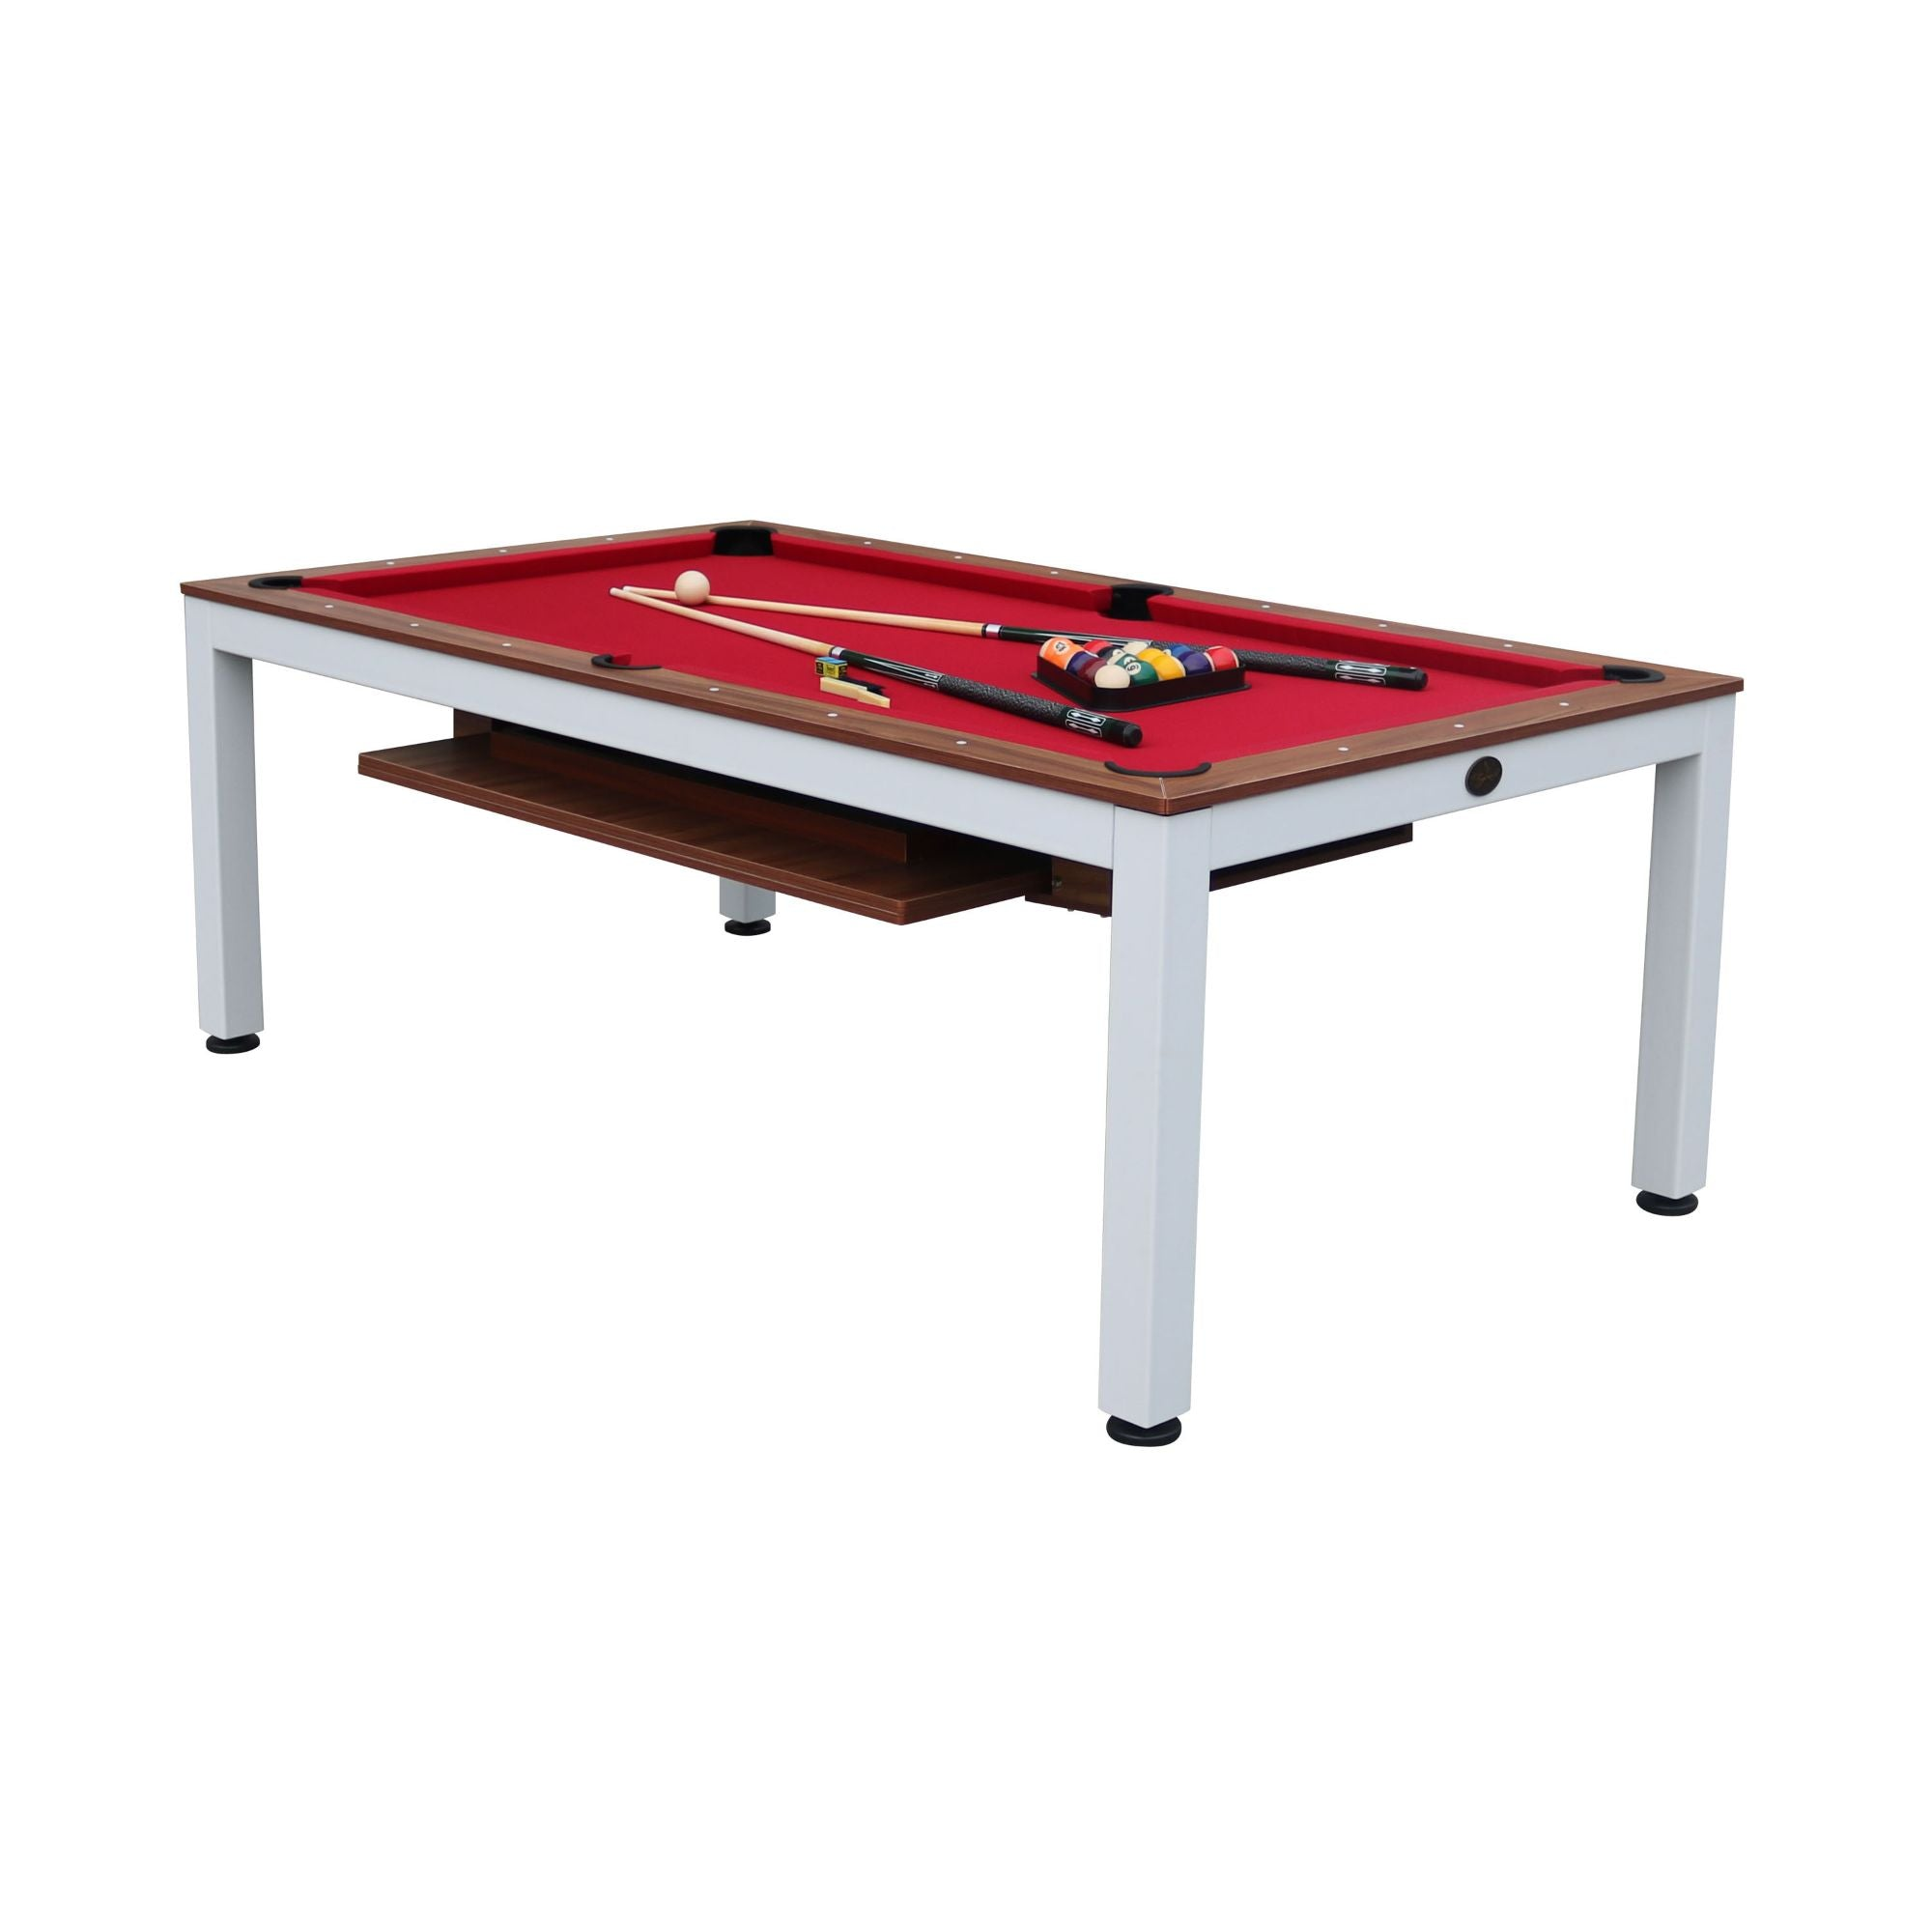 Playcraft Glacier 7' Pool Table with Dining Top - Gaming Blaze